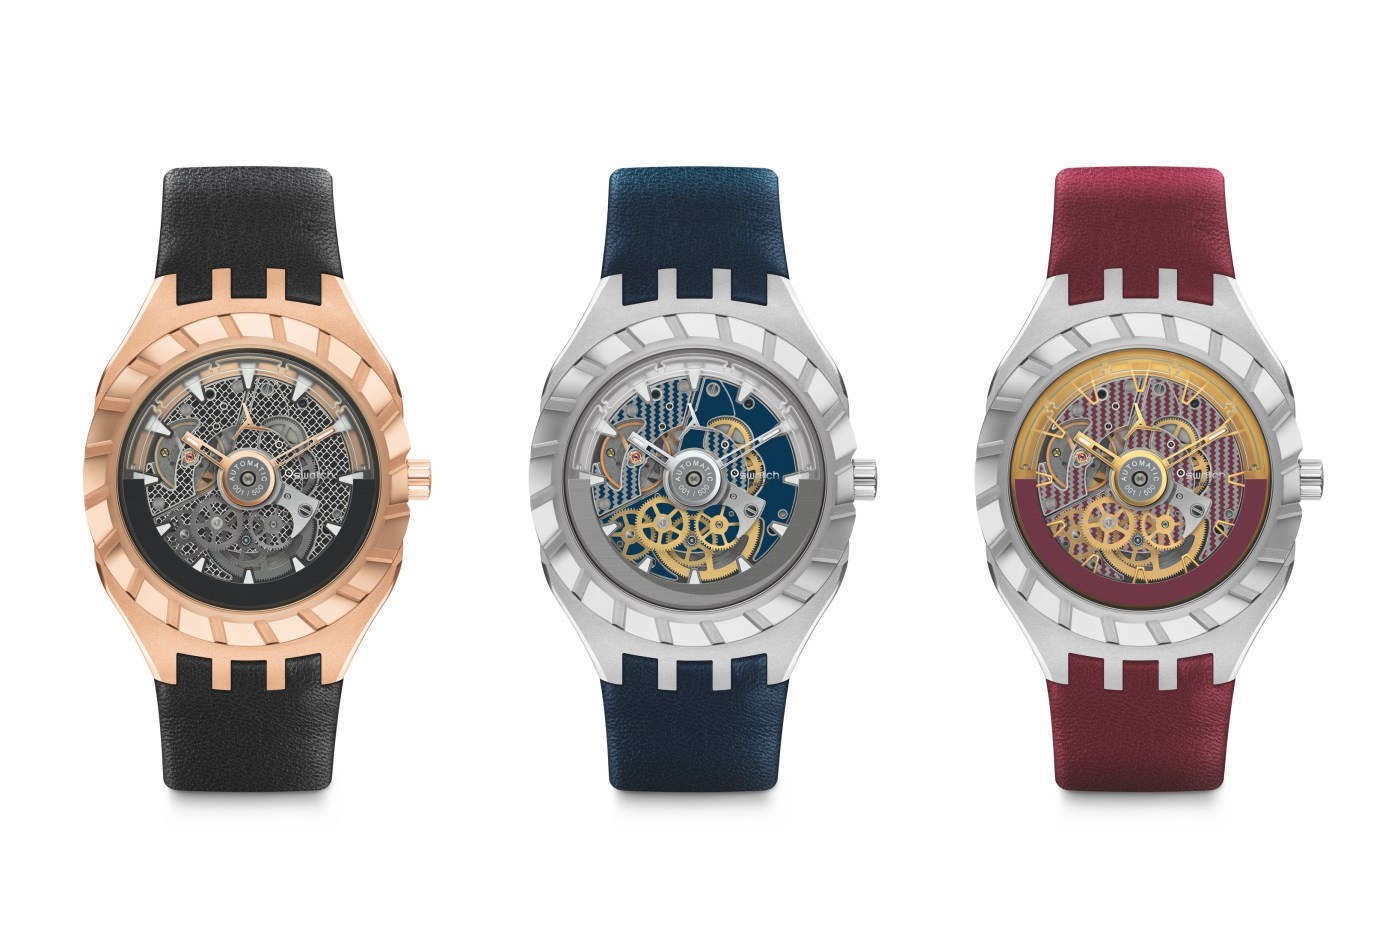 Three versions of the Swatch Flymagic